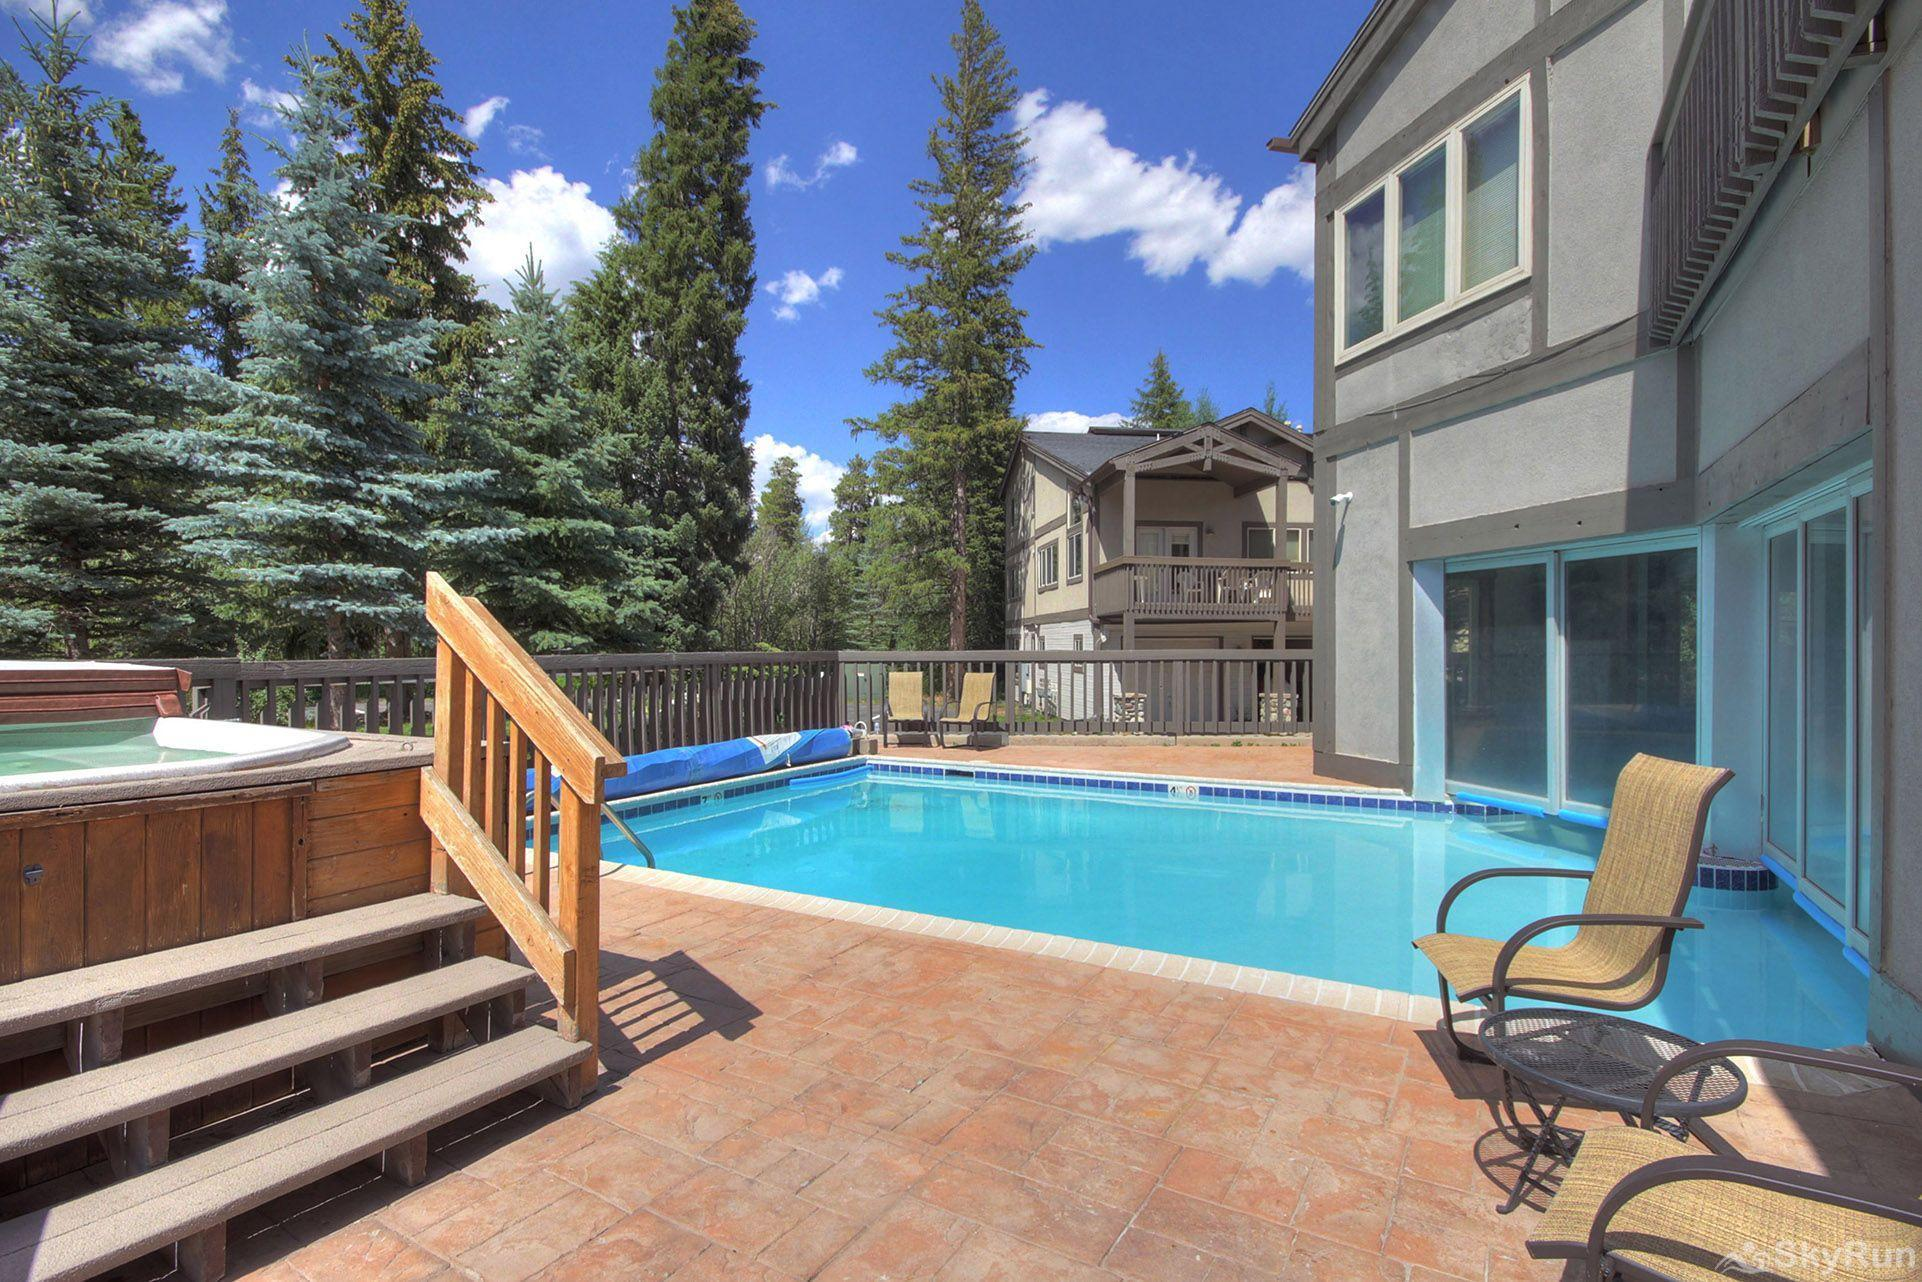 CC301 Cross Creek 2BR 2BA Outdoor hot tub & pool